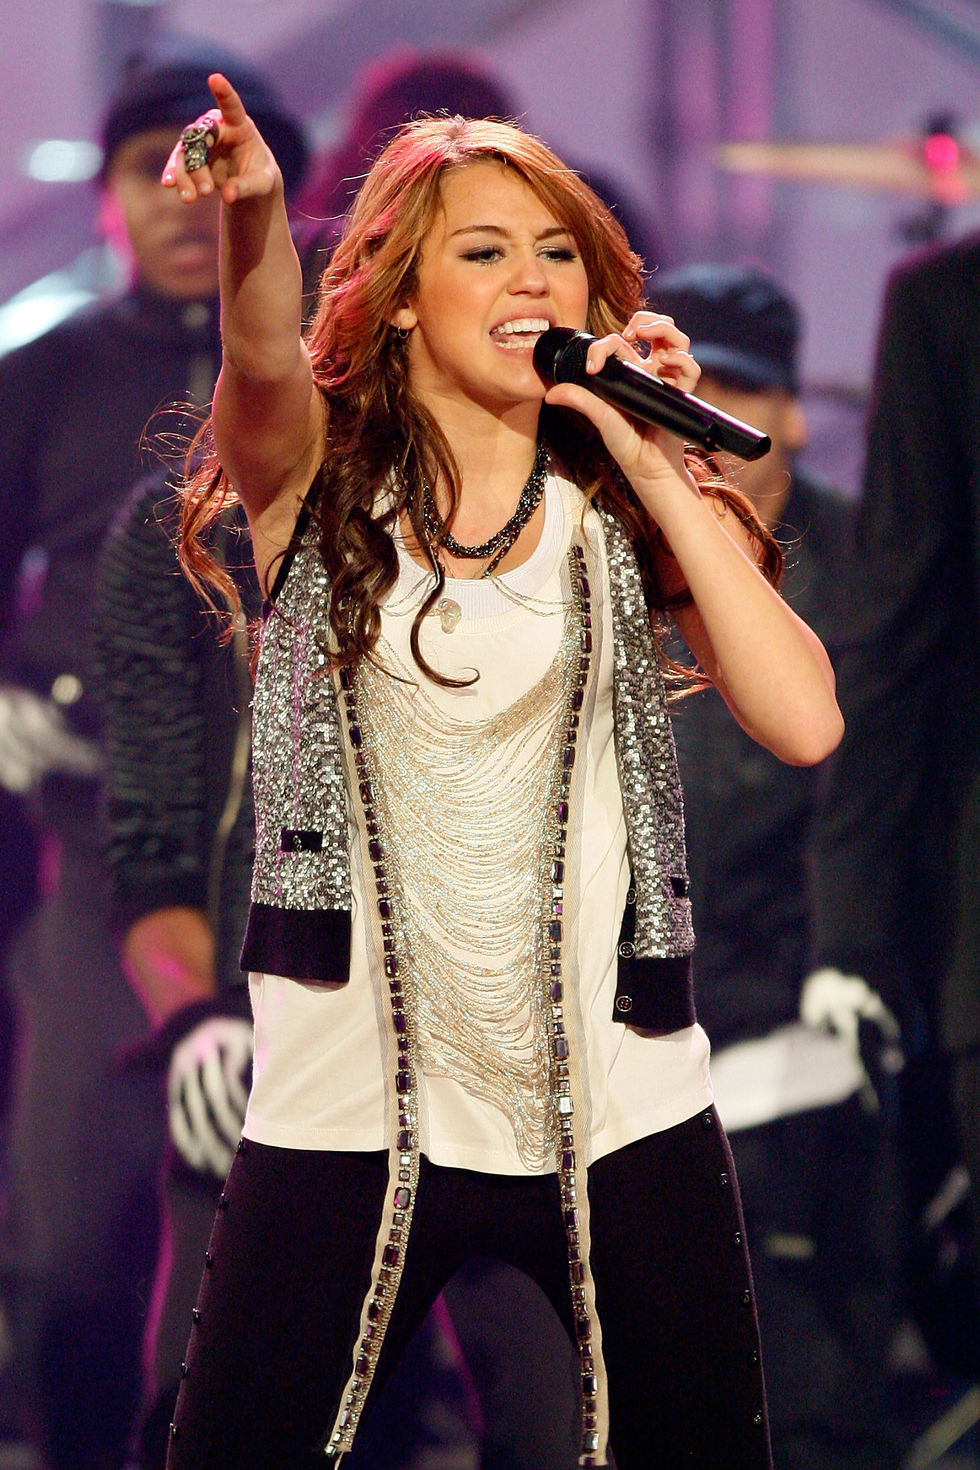 miley-cyrus-2008-american-music-awards-01